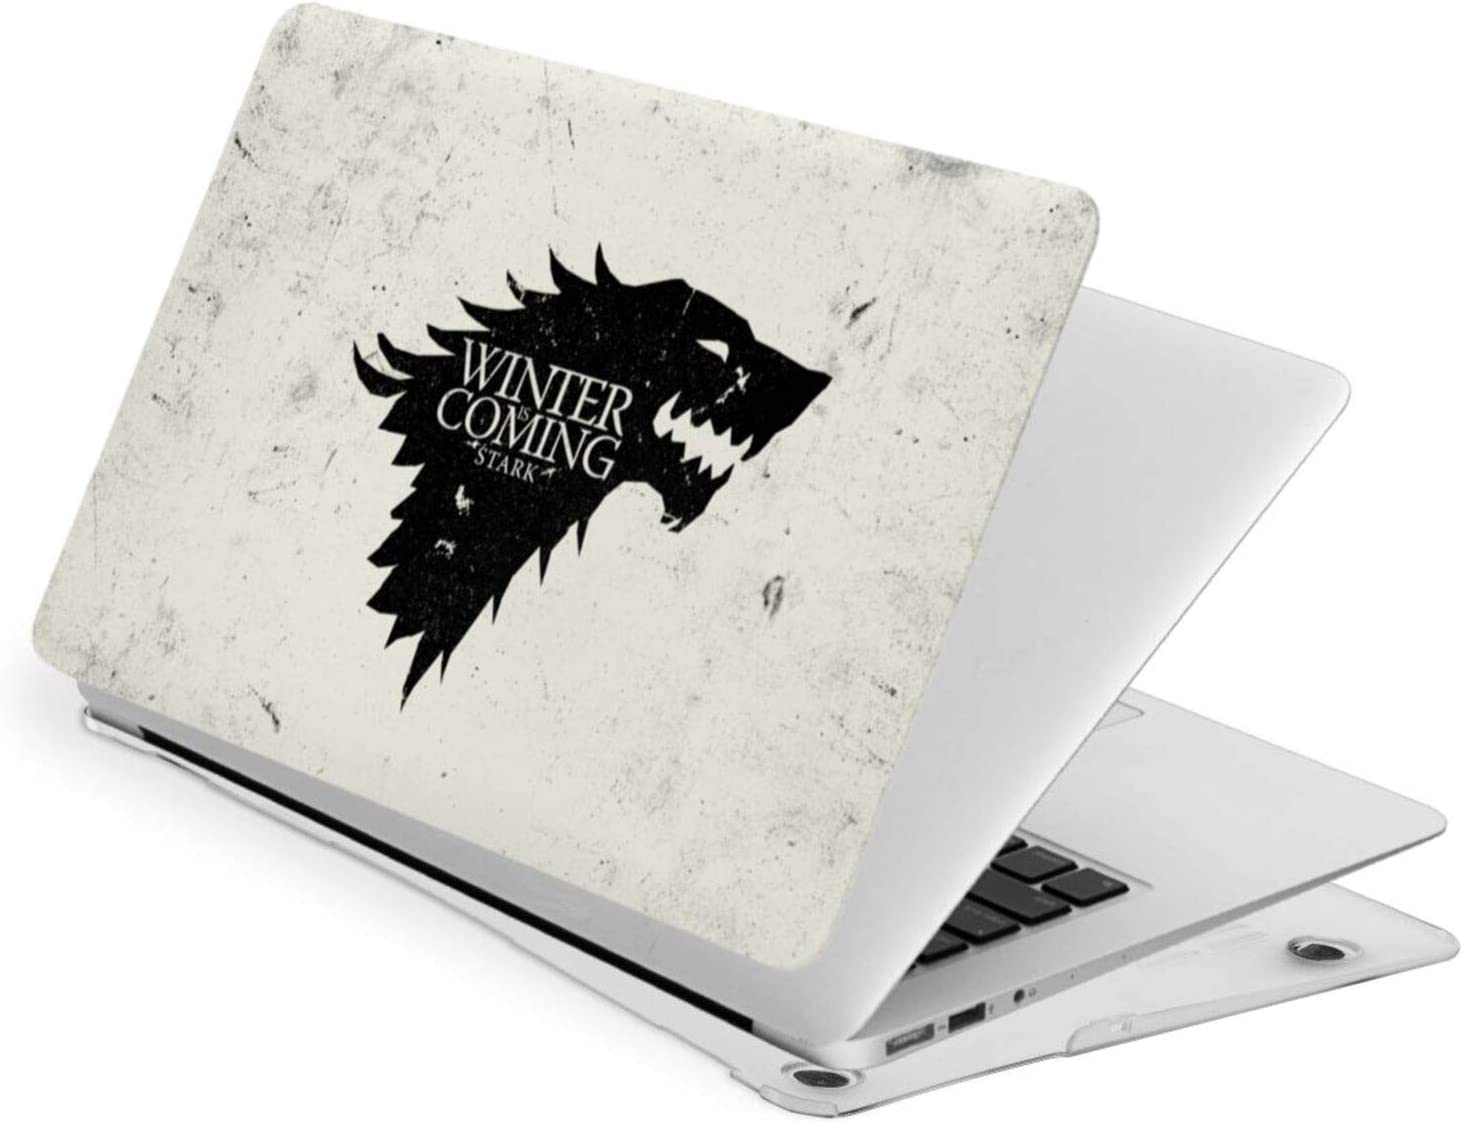 JHJHJ Game of Thrones-Winter is Coming Stark Laptop Case Fortouch13 Hard Case Shell Cover + A Keyboard Swipe The Quality of A Material is Frivolous,Good Heat Dissipation Performance